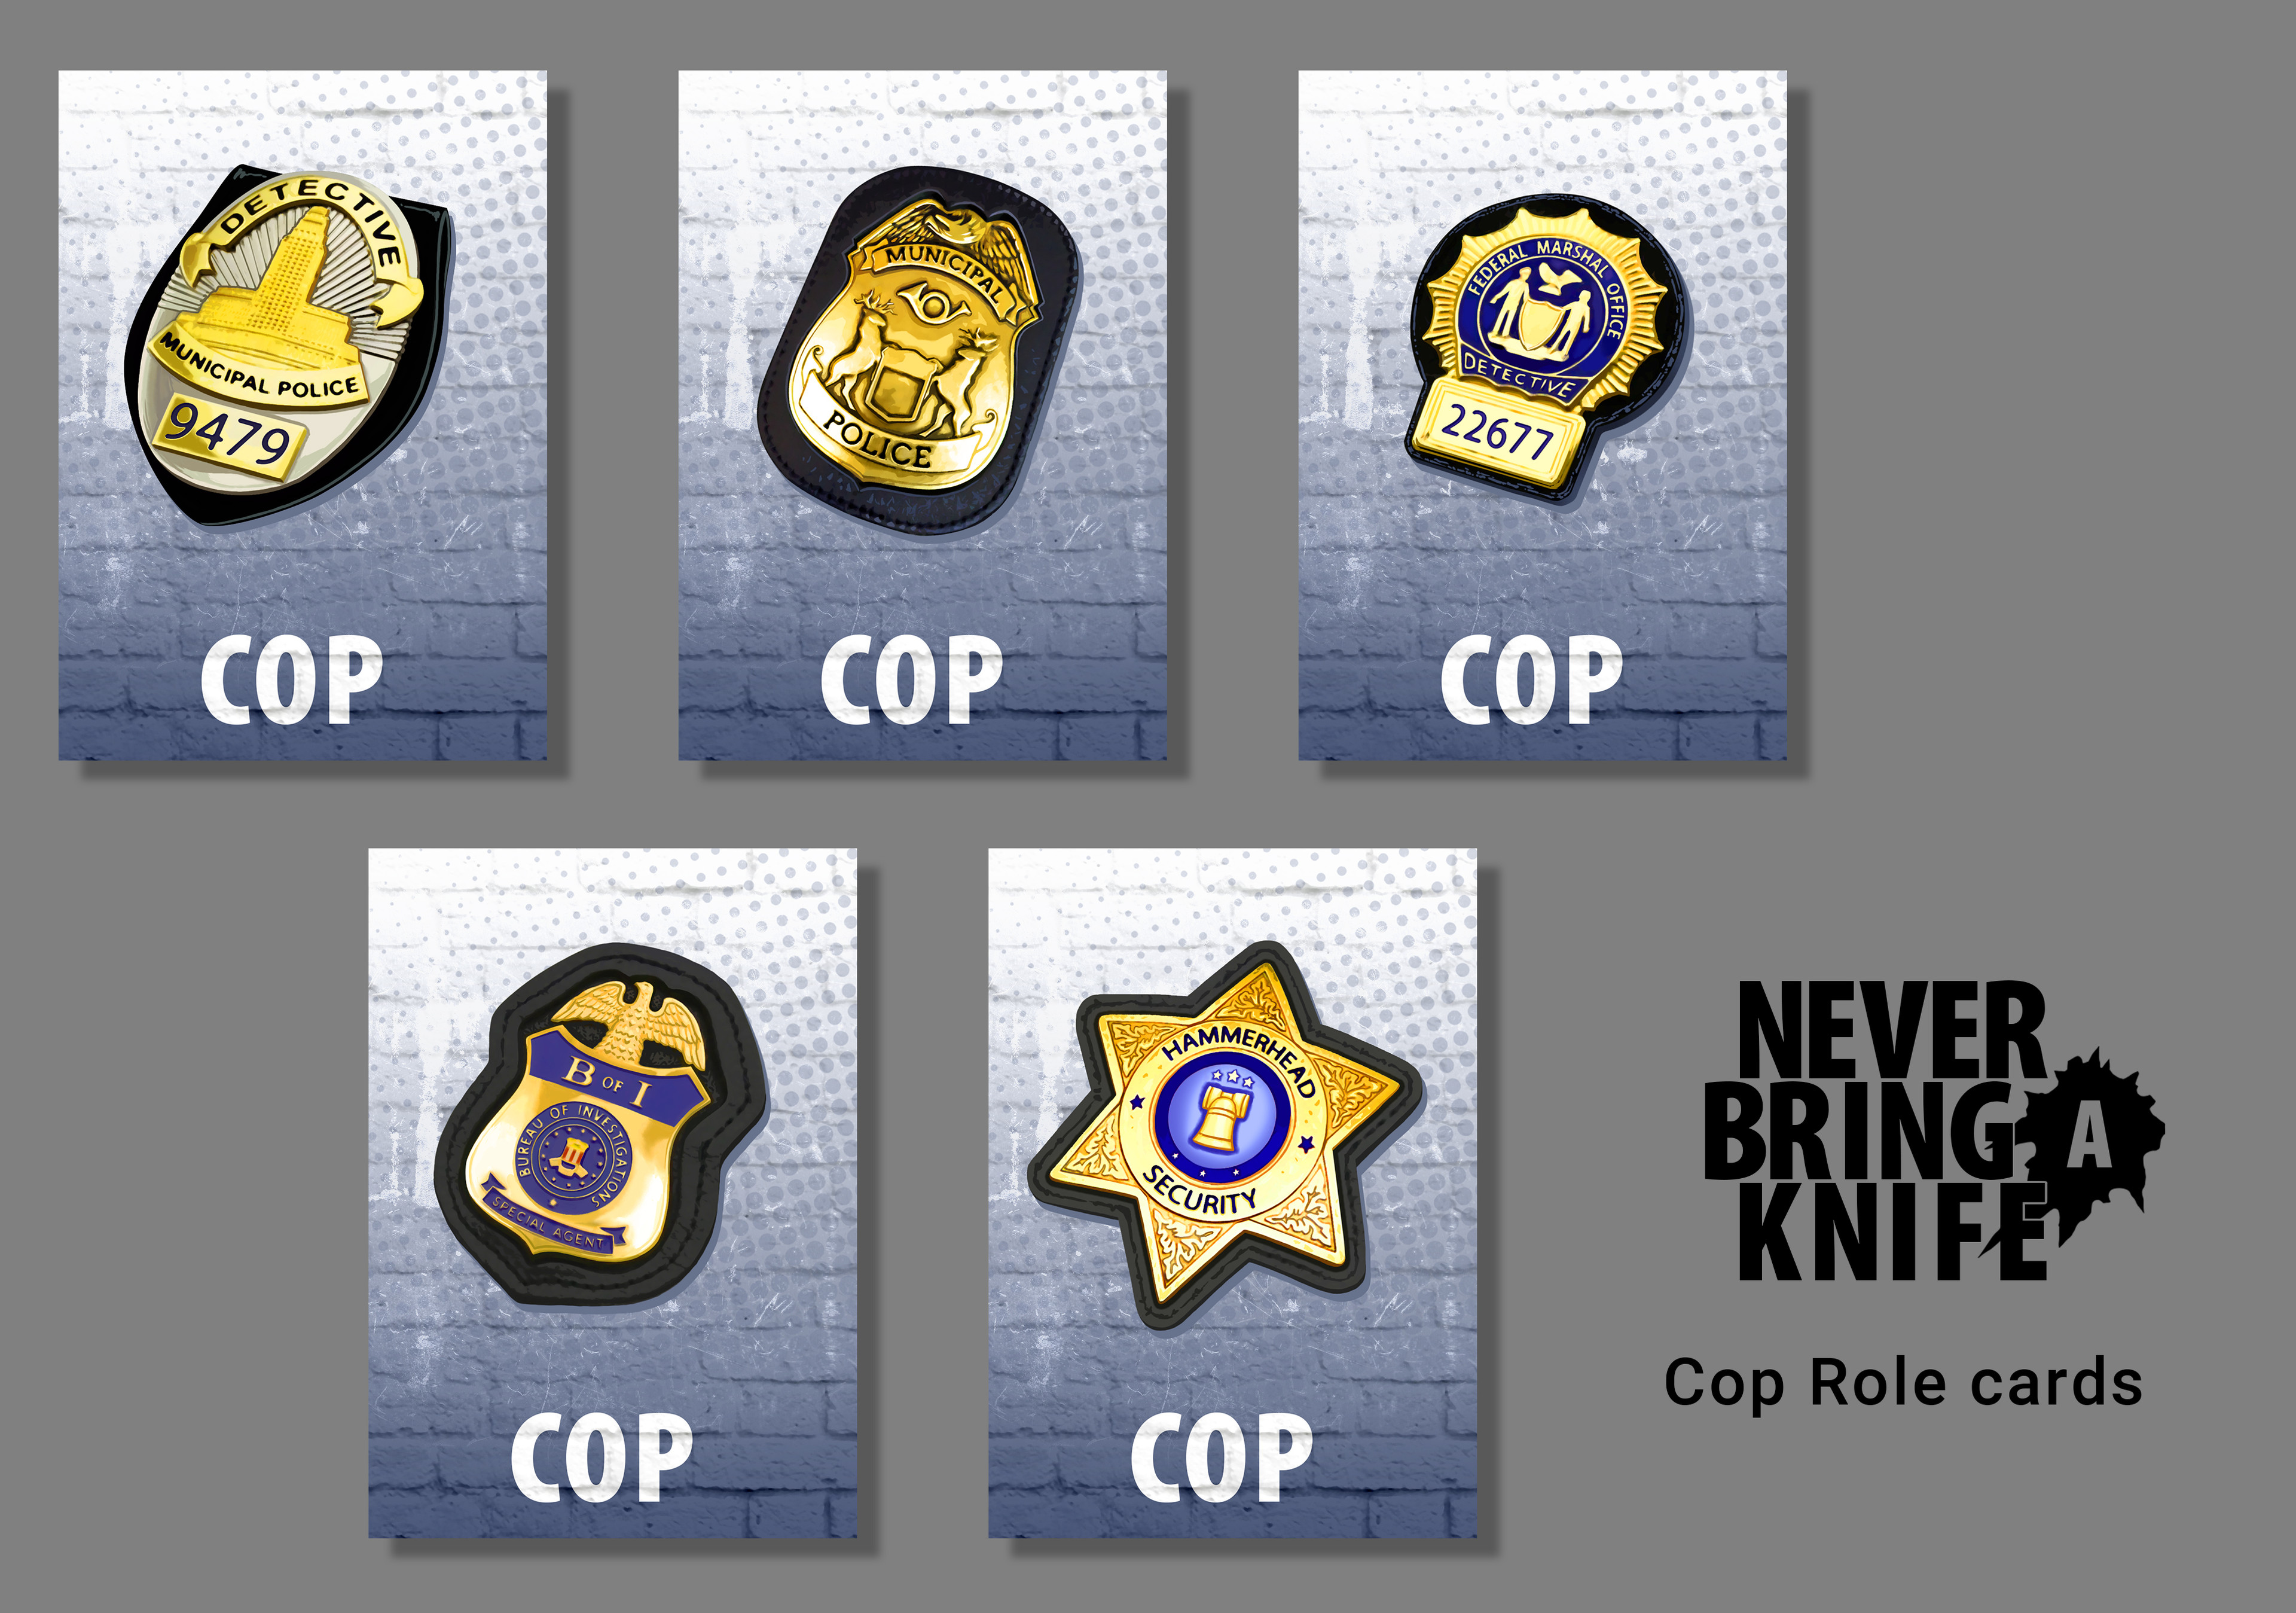 Cop Role cards for the Never Bring a Knife card game from Atlas Games.